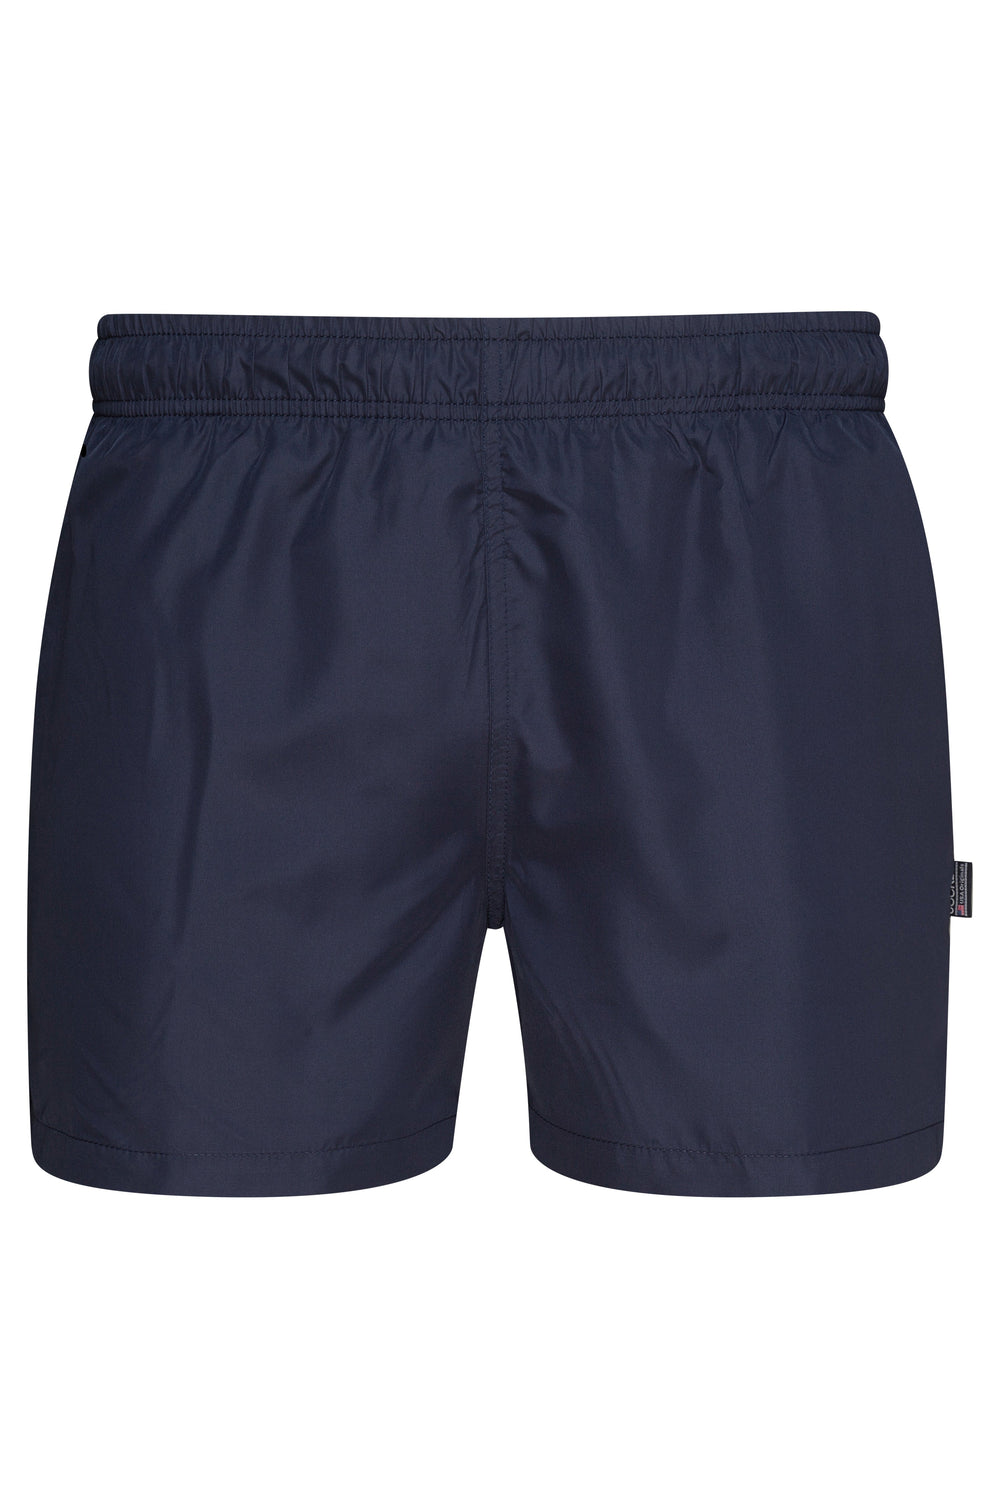 Jockey® Essential Swim Shorts